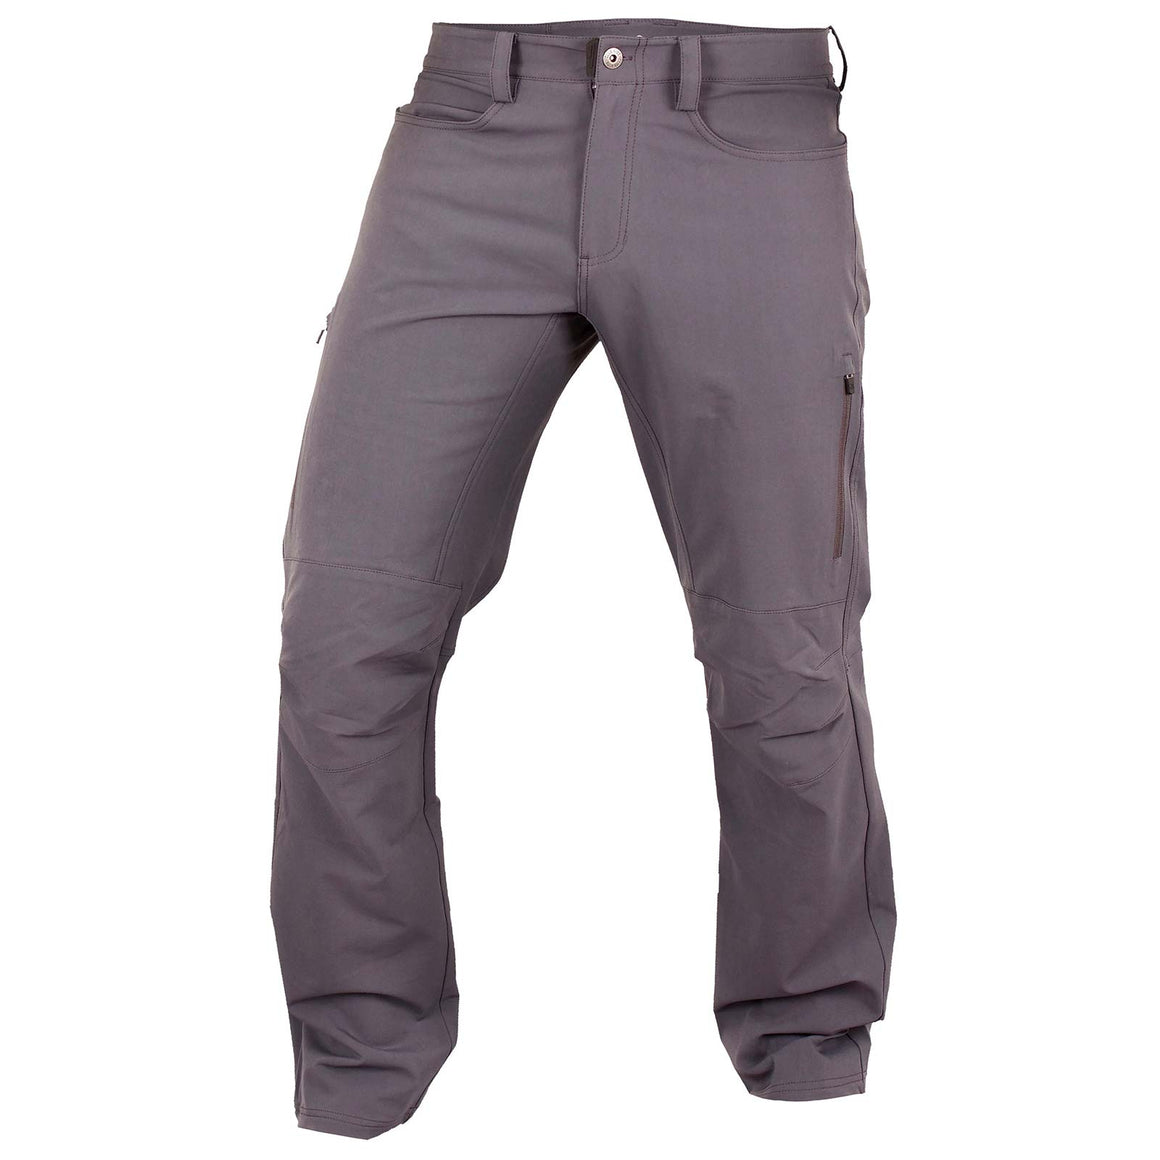 Club Ride Revolution Cycling Pants